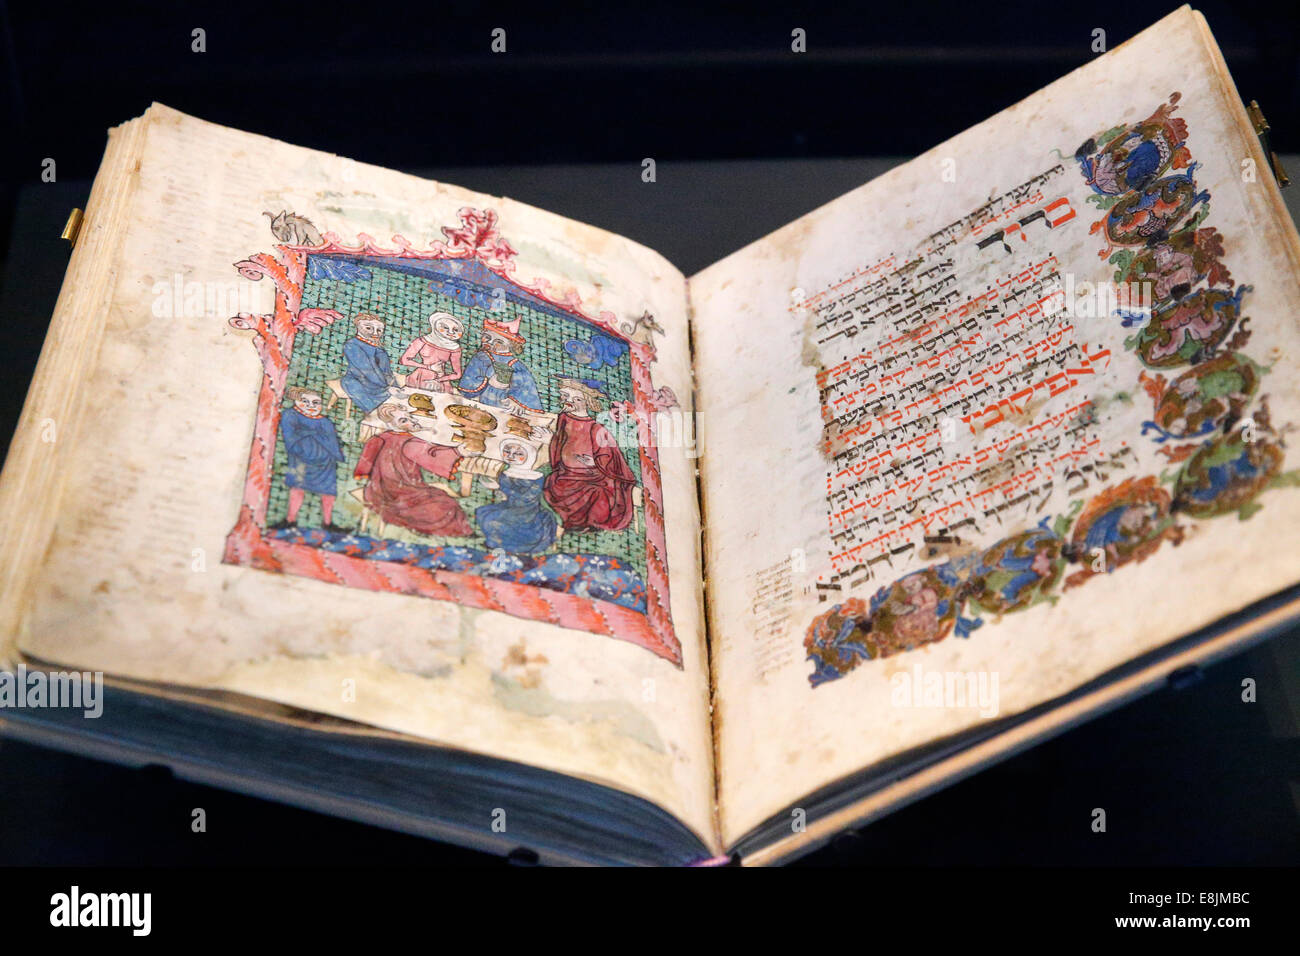 The Israel Museum. The Erna Michael Haggadah. Germany, 1400. - Stock Image